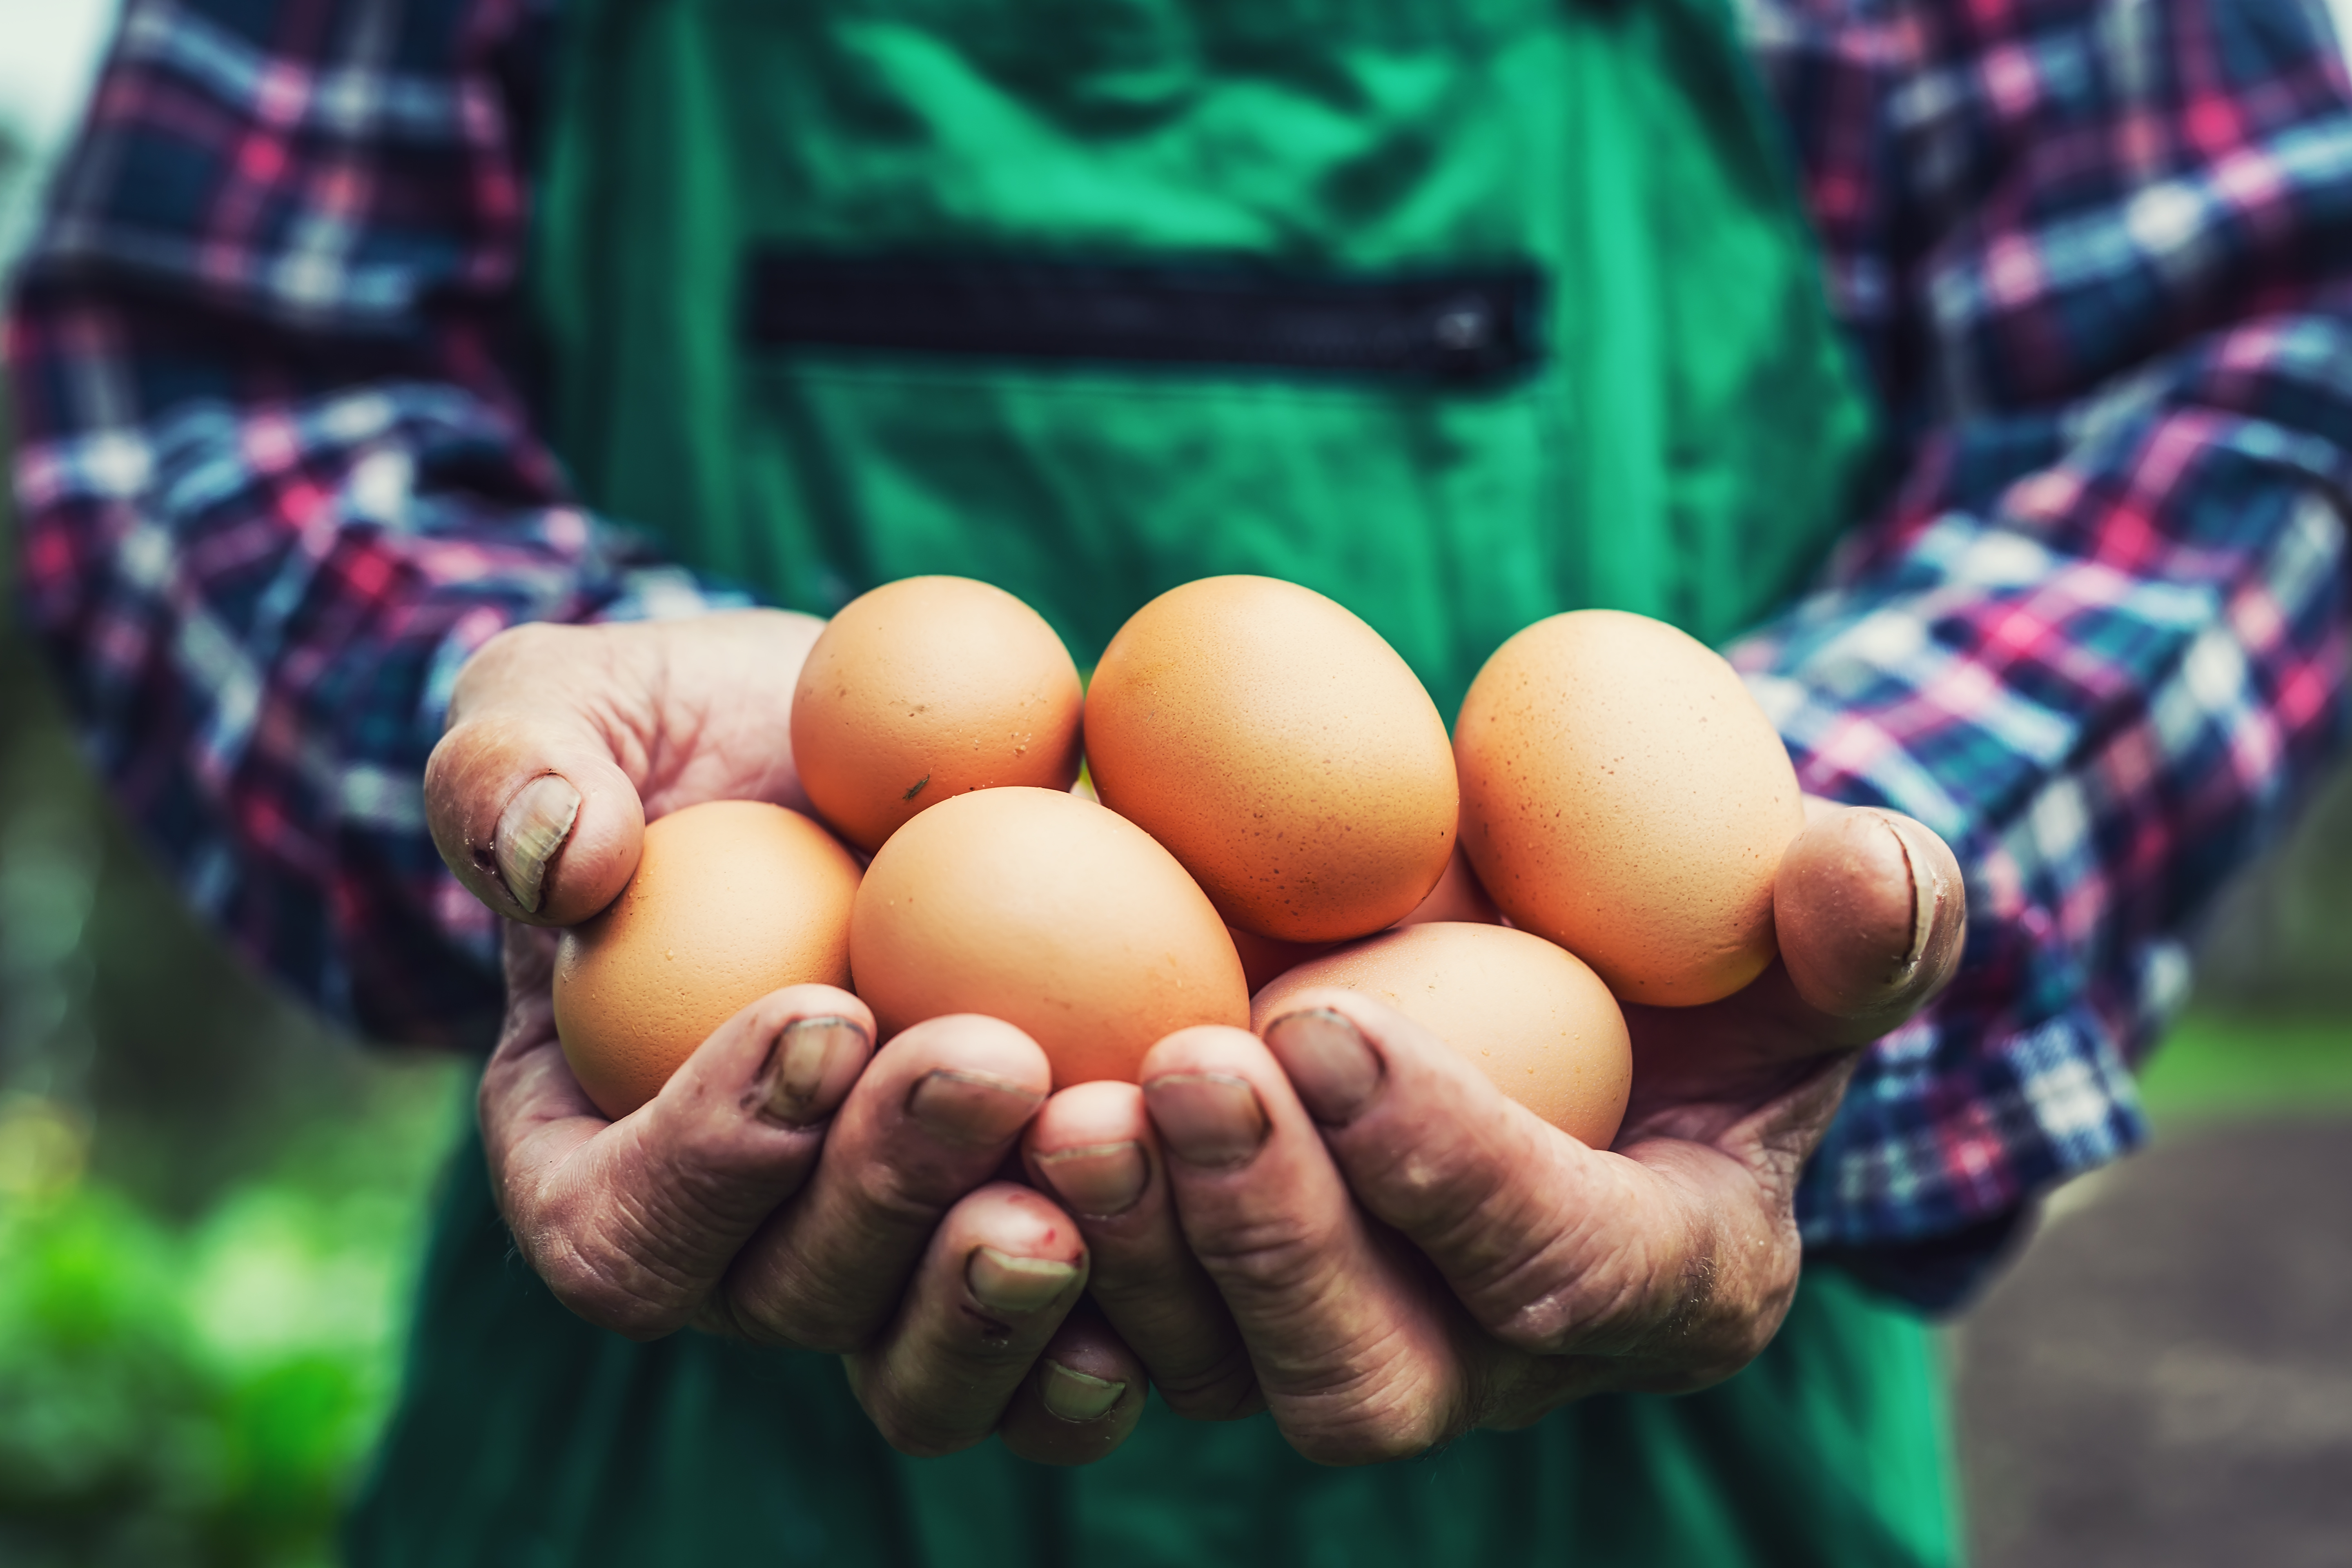 Organic farmers are fighting new plans to deregulate the organic egg industry.